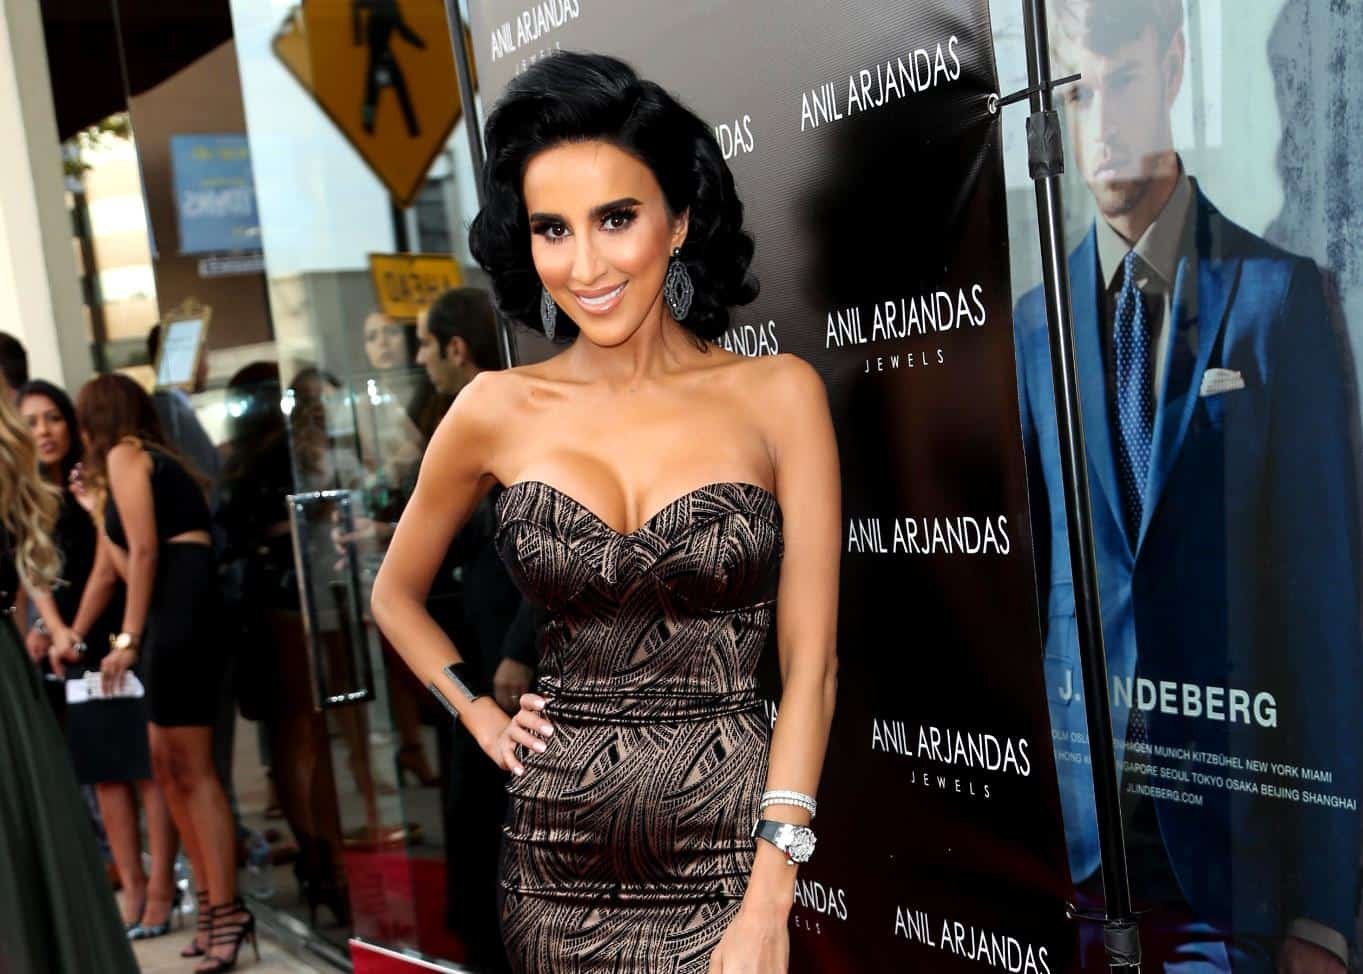 PHOTO: Shahs of Sunset's Lilly Ghalichi Has Surgery After Her Breast Implant Ruptures, She Shares Picture and Opens Up About Experience, Plus She Warns About the Risks of Surgery